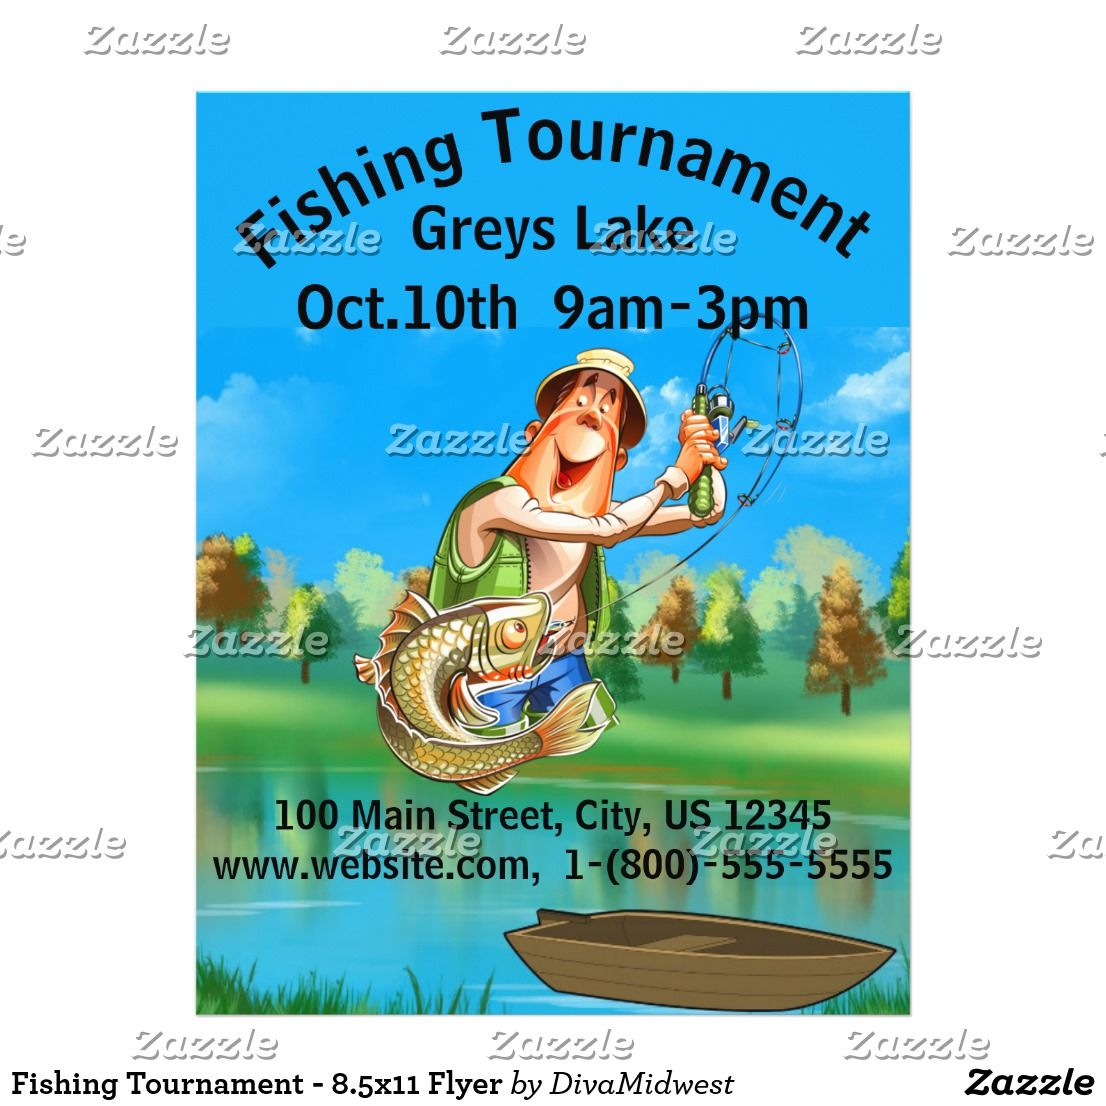 Fishing Tournament 85x11 Flyer Event Flyers Pinterest